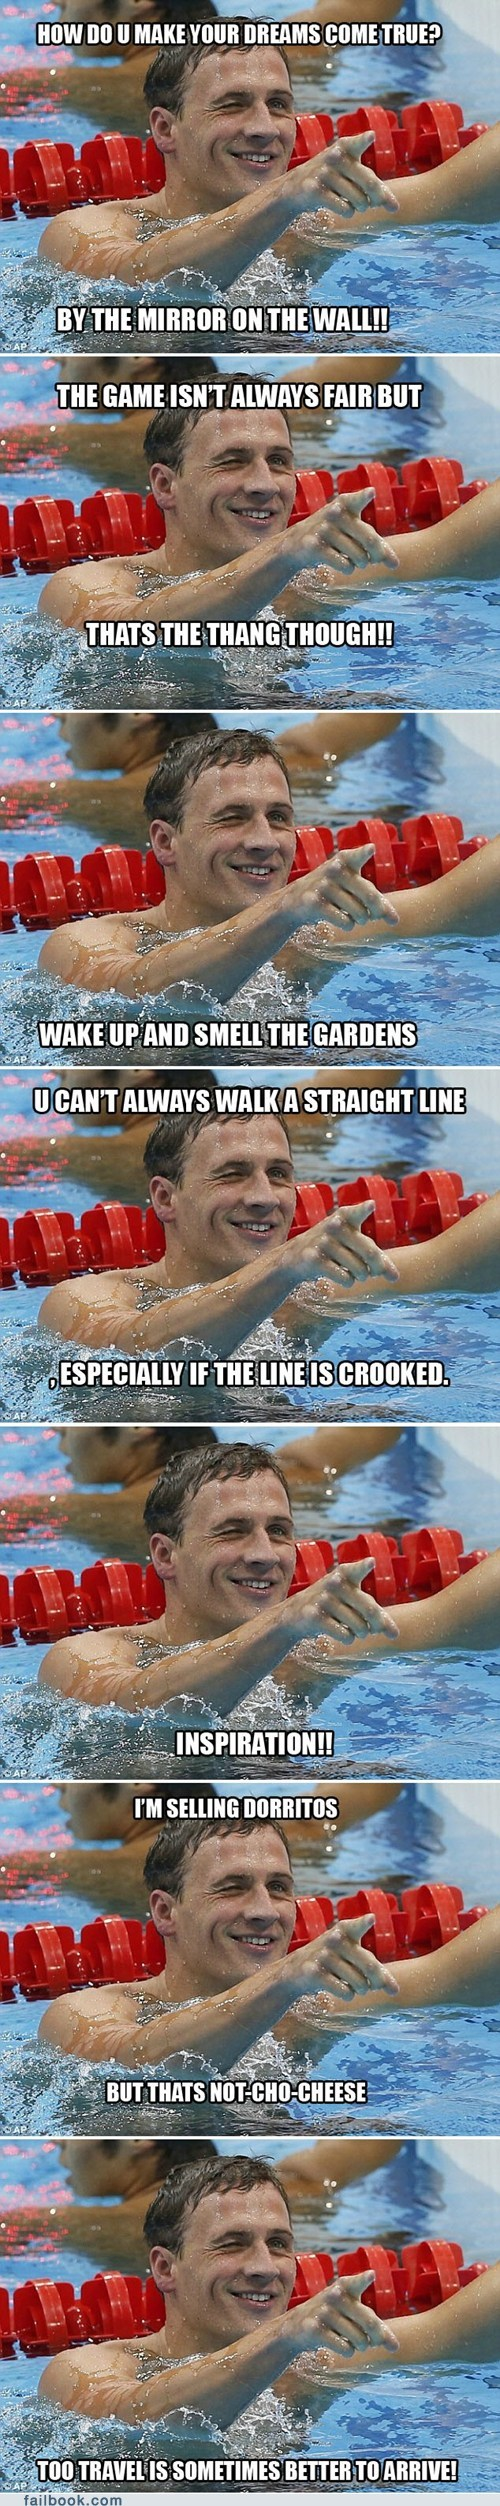 athlete,failbook,g rated,Lochte,olympics,ryan lochte,sports,tweet,twitter